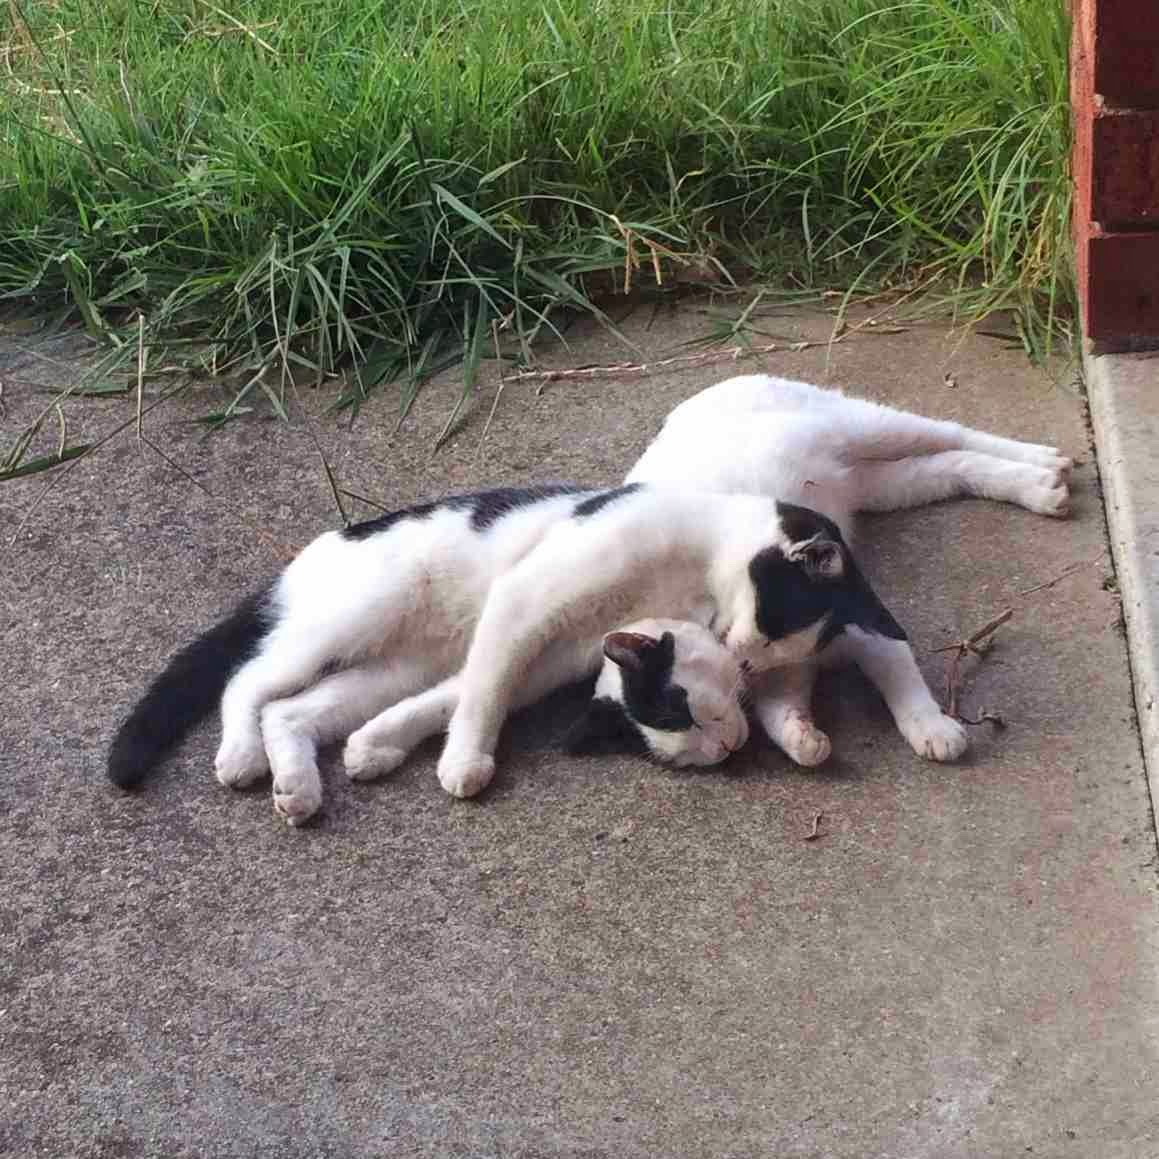 Funny cats - part 96 (40 pics + 10 gifs), cat pictures, cats cuddling